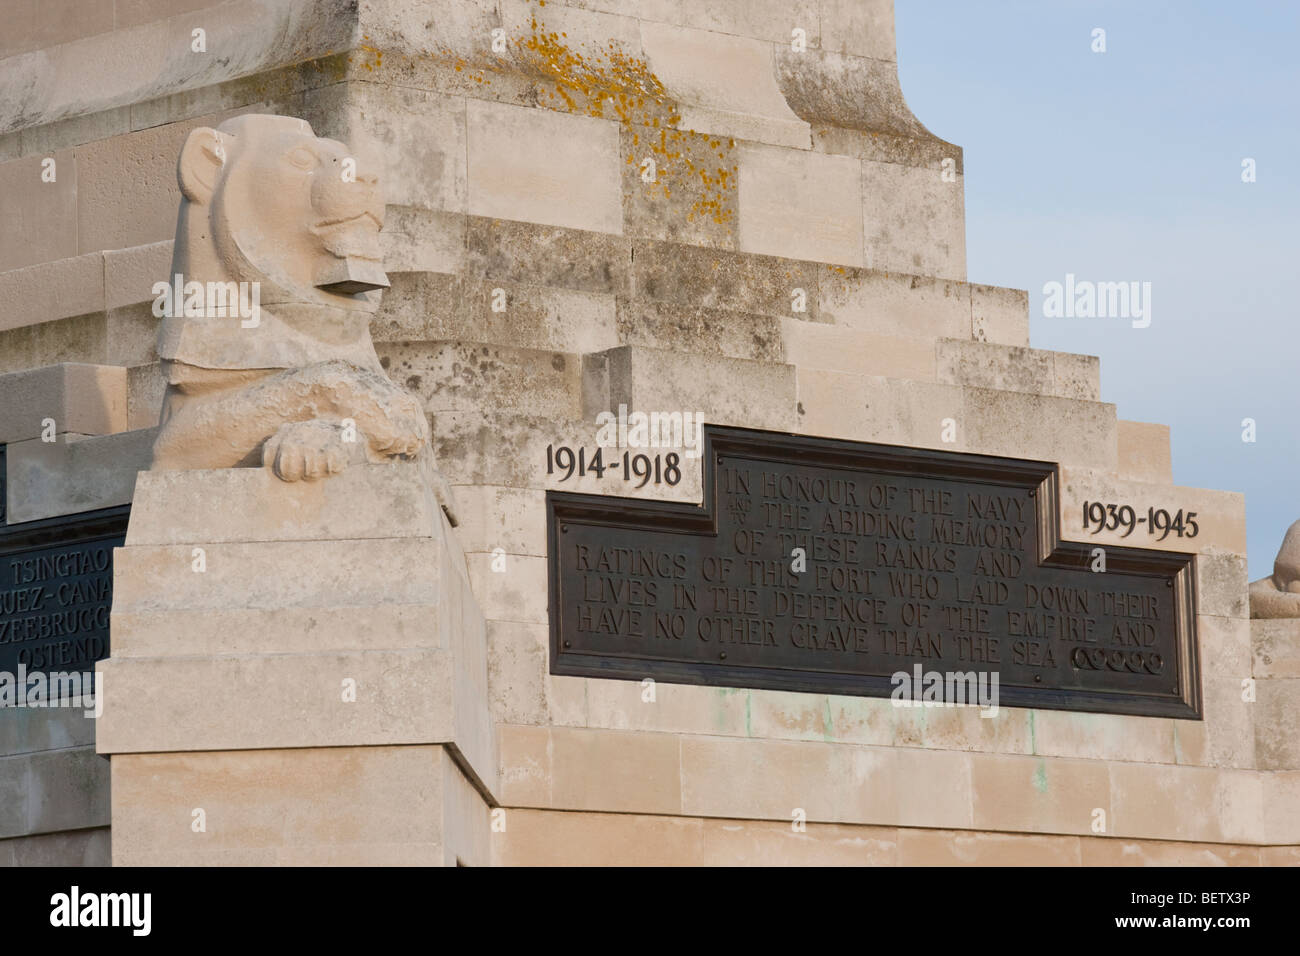 Stone lion on Royal Navy War Memorial in Southsea, England UK. - Stock Image